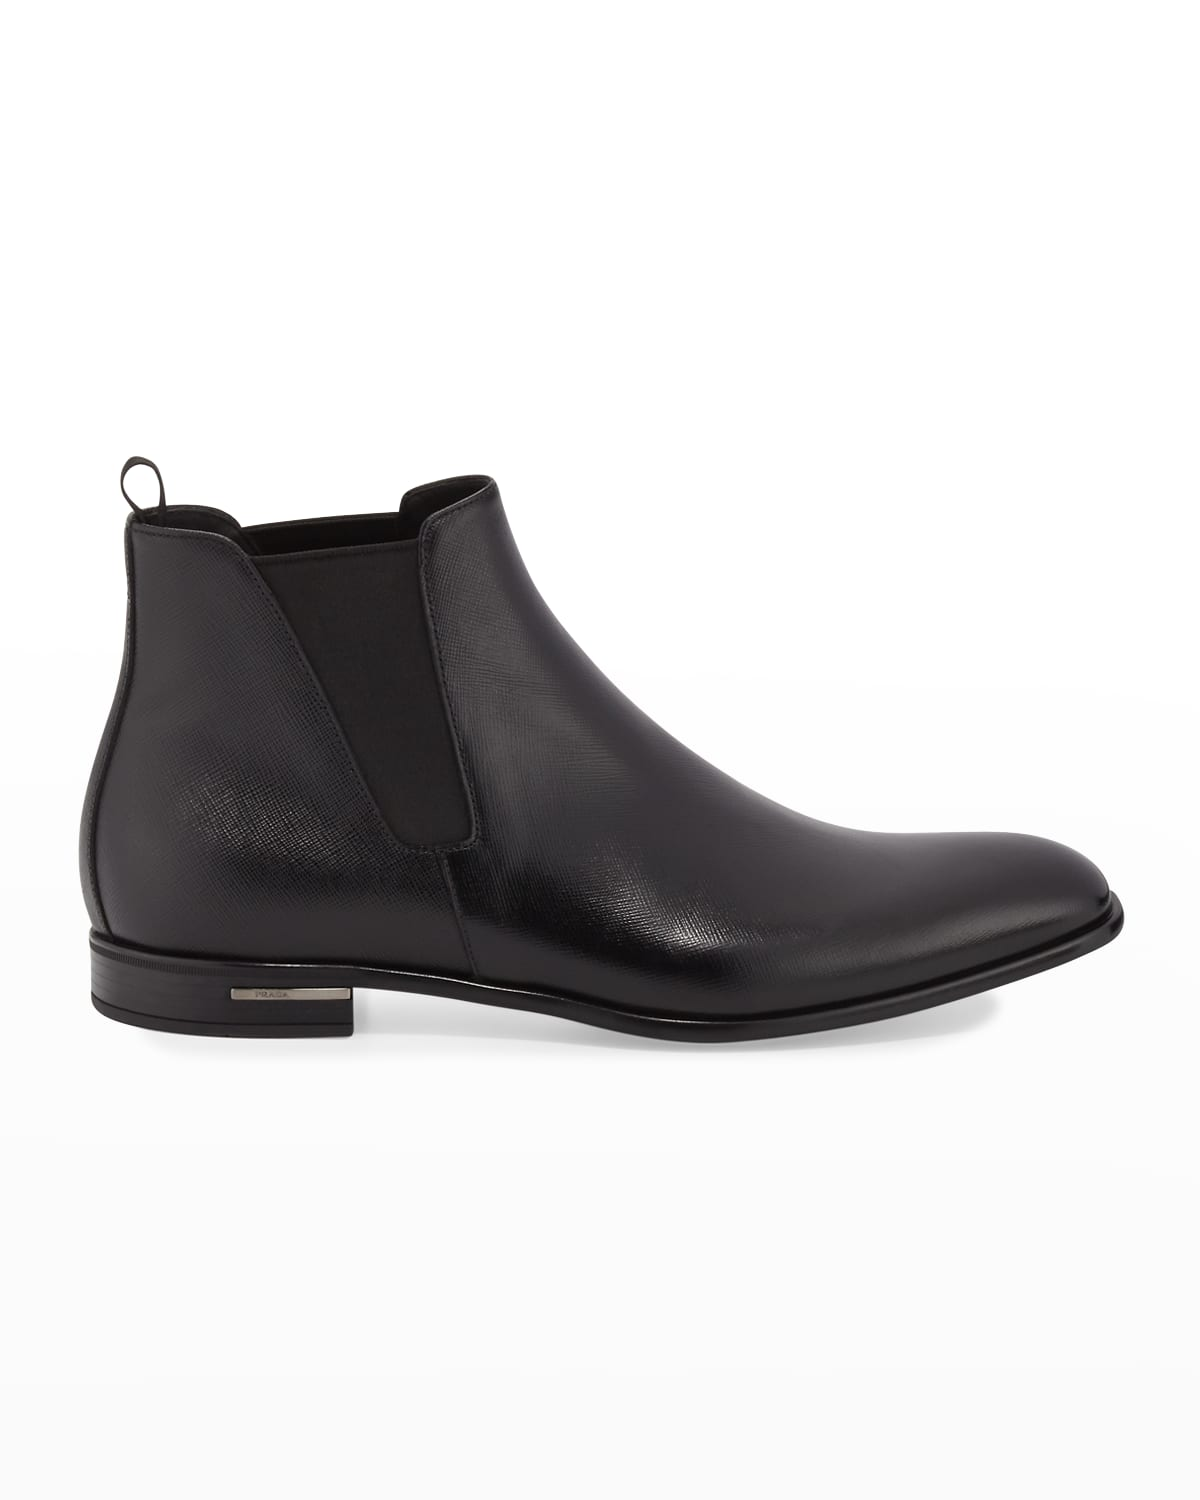 Saffiano Leather Chelsea Boots